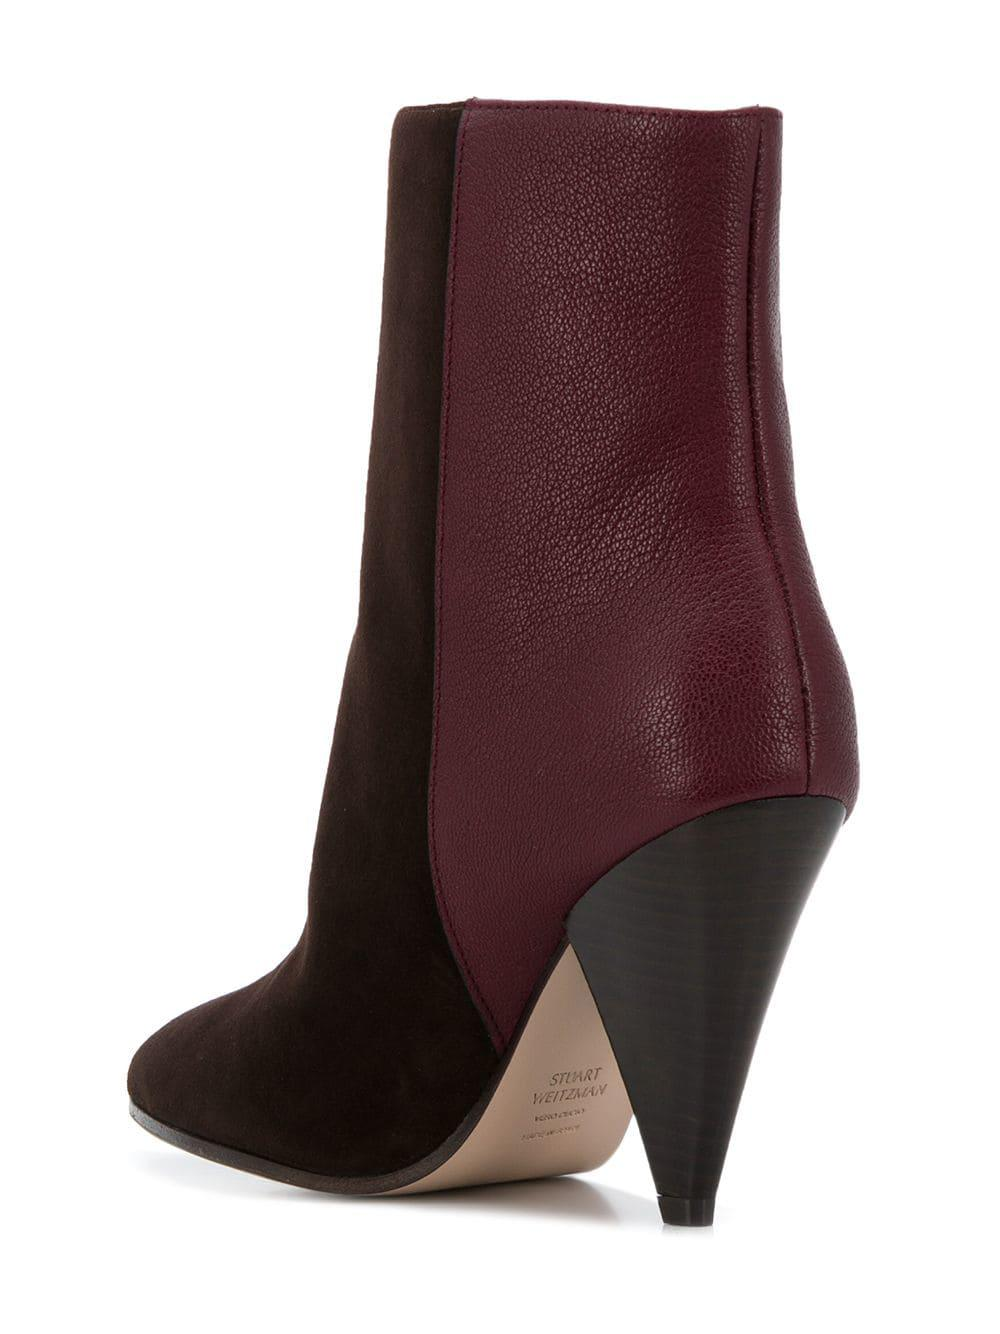 Stuart Weitzman Leather Cone Heel Ankle Boots in Brown